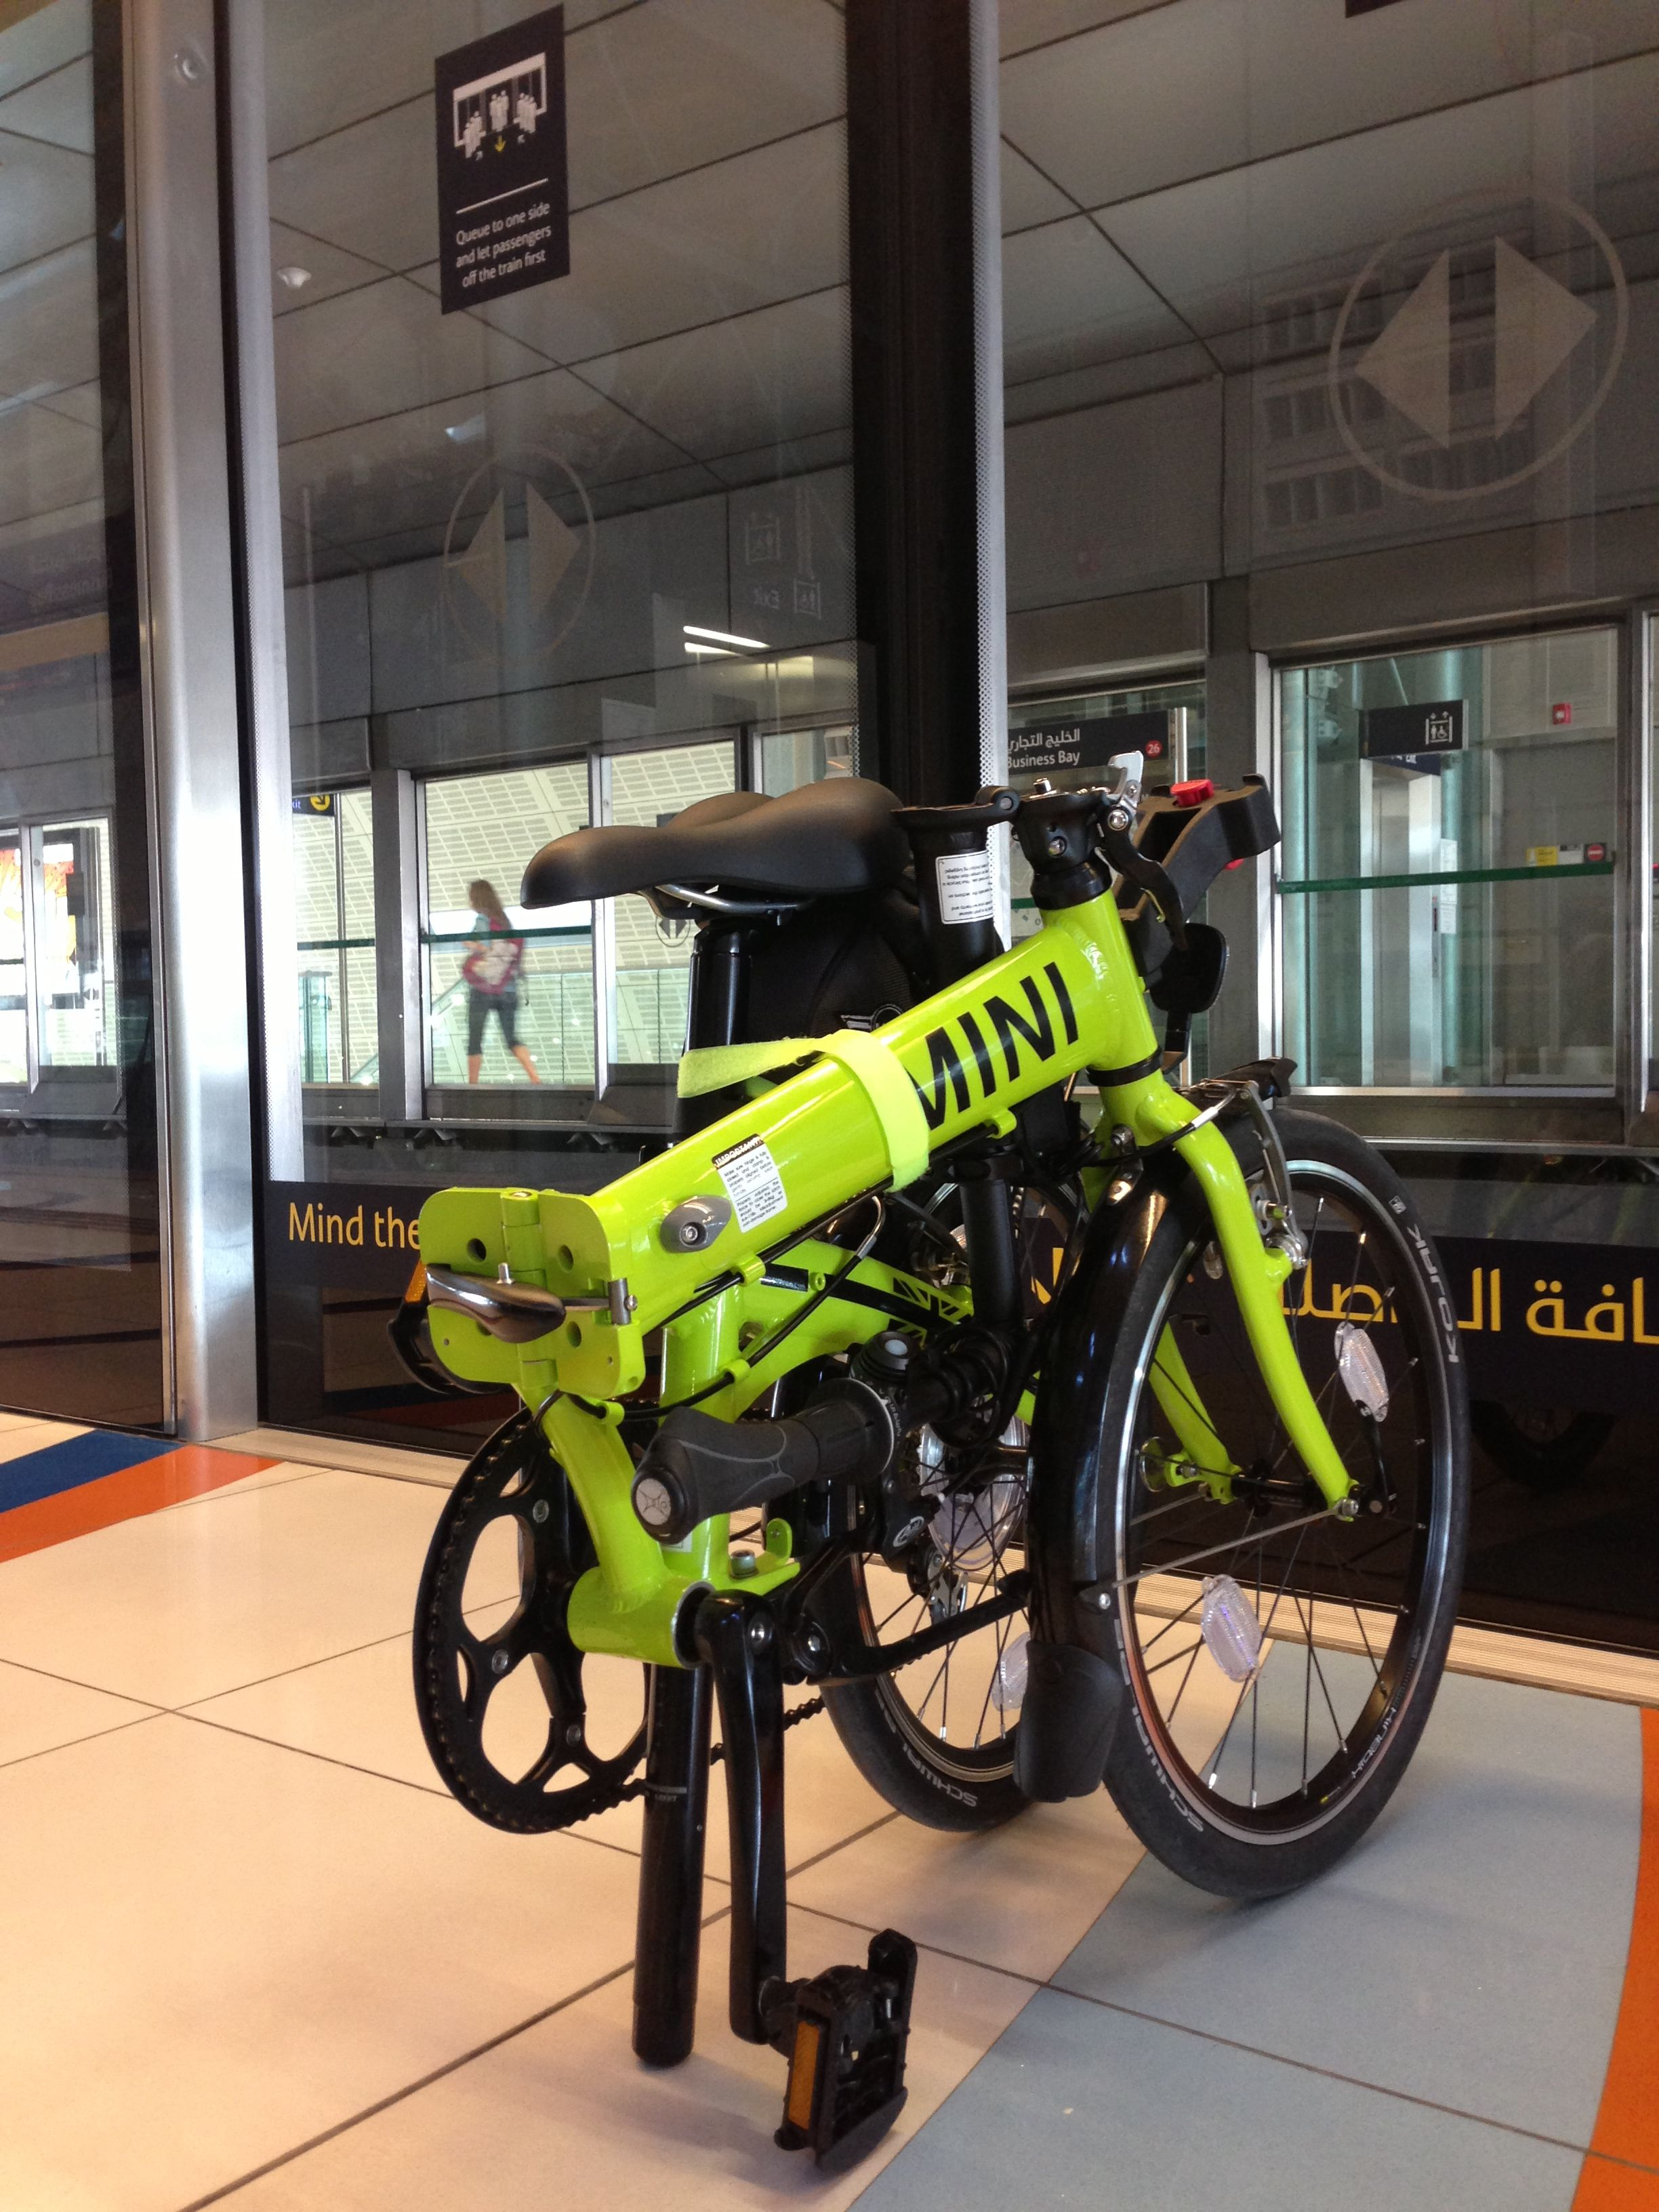 The Dubai Metro And A Mini Folding Bike 2 Most Efficient Modes Of